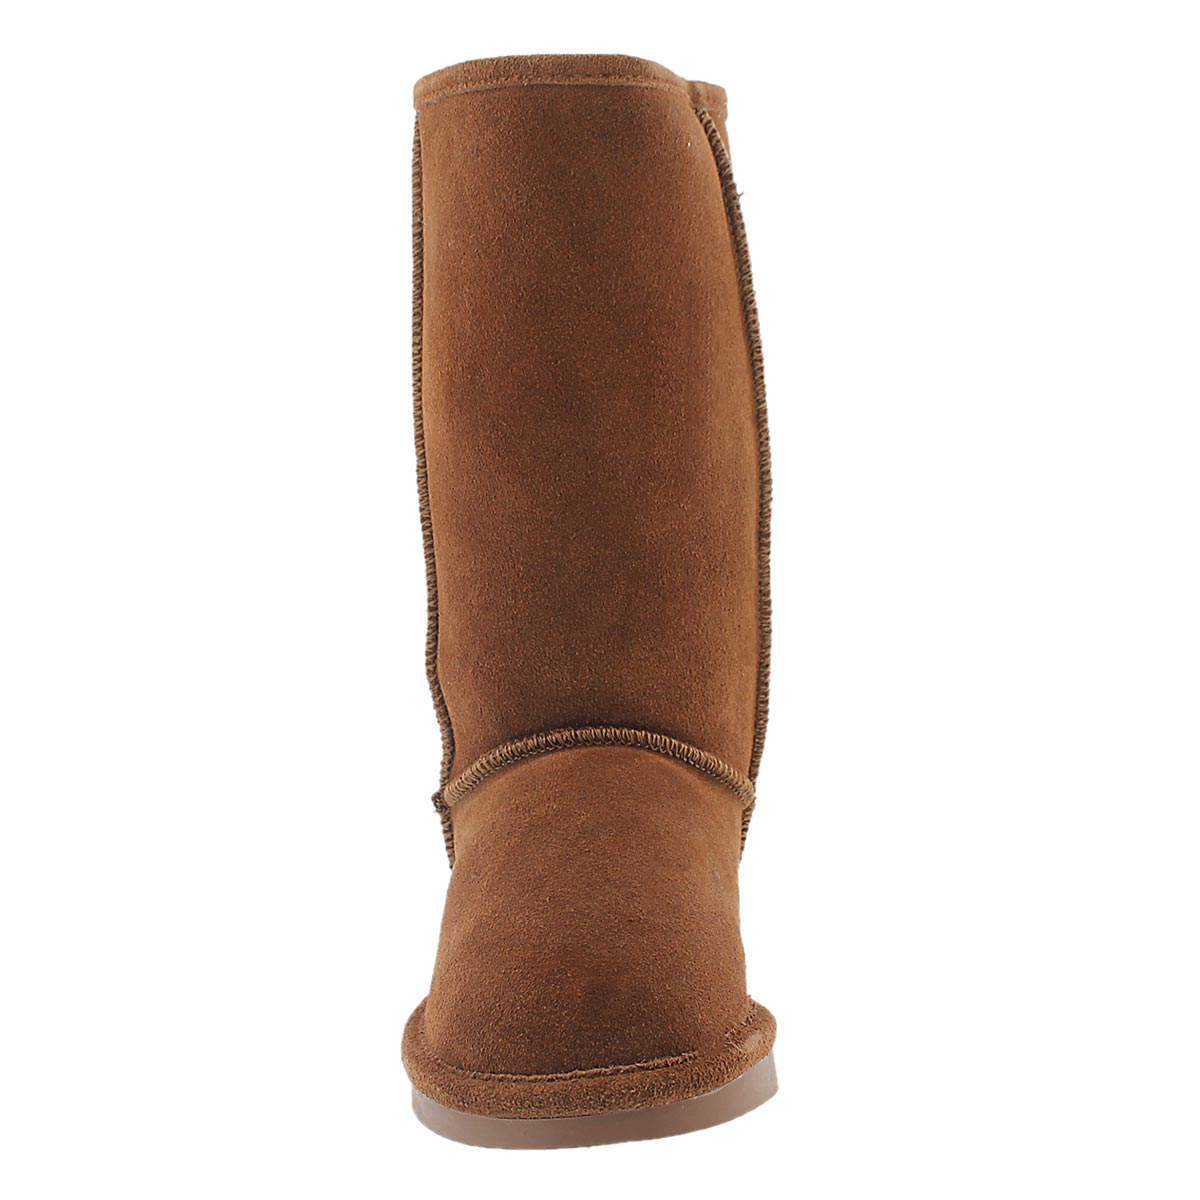 Lds Smocs 4 spice tall suede boot